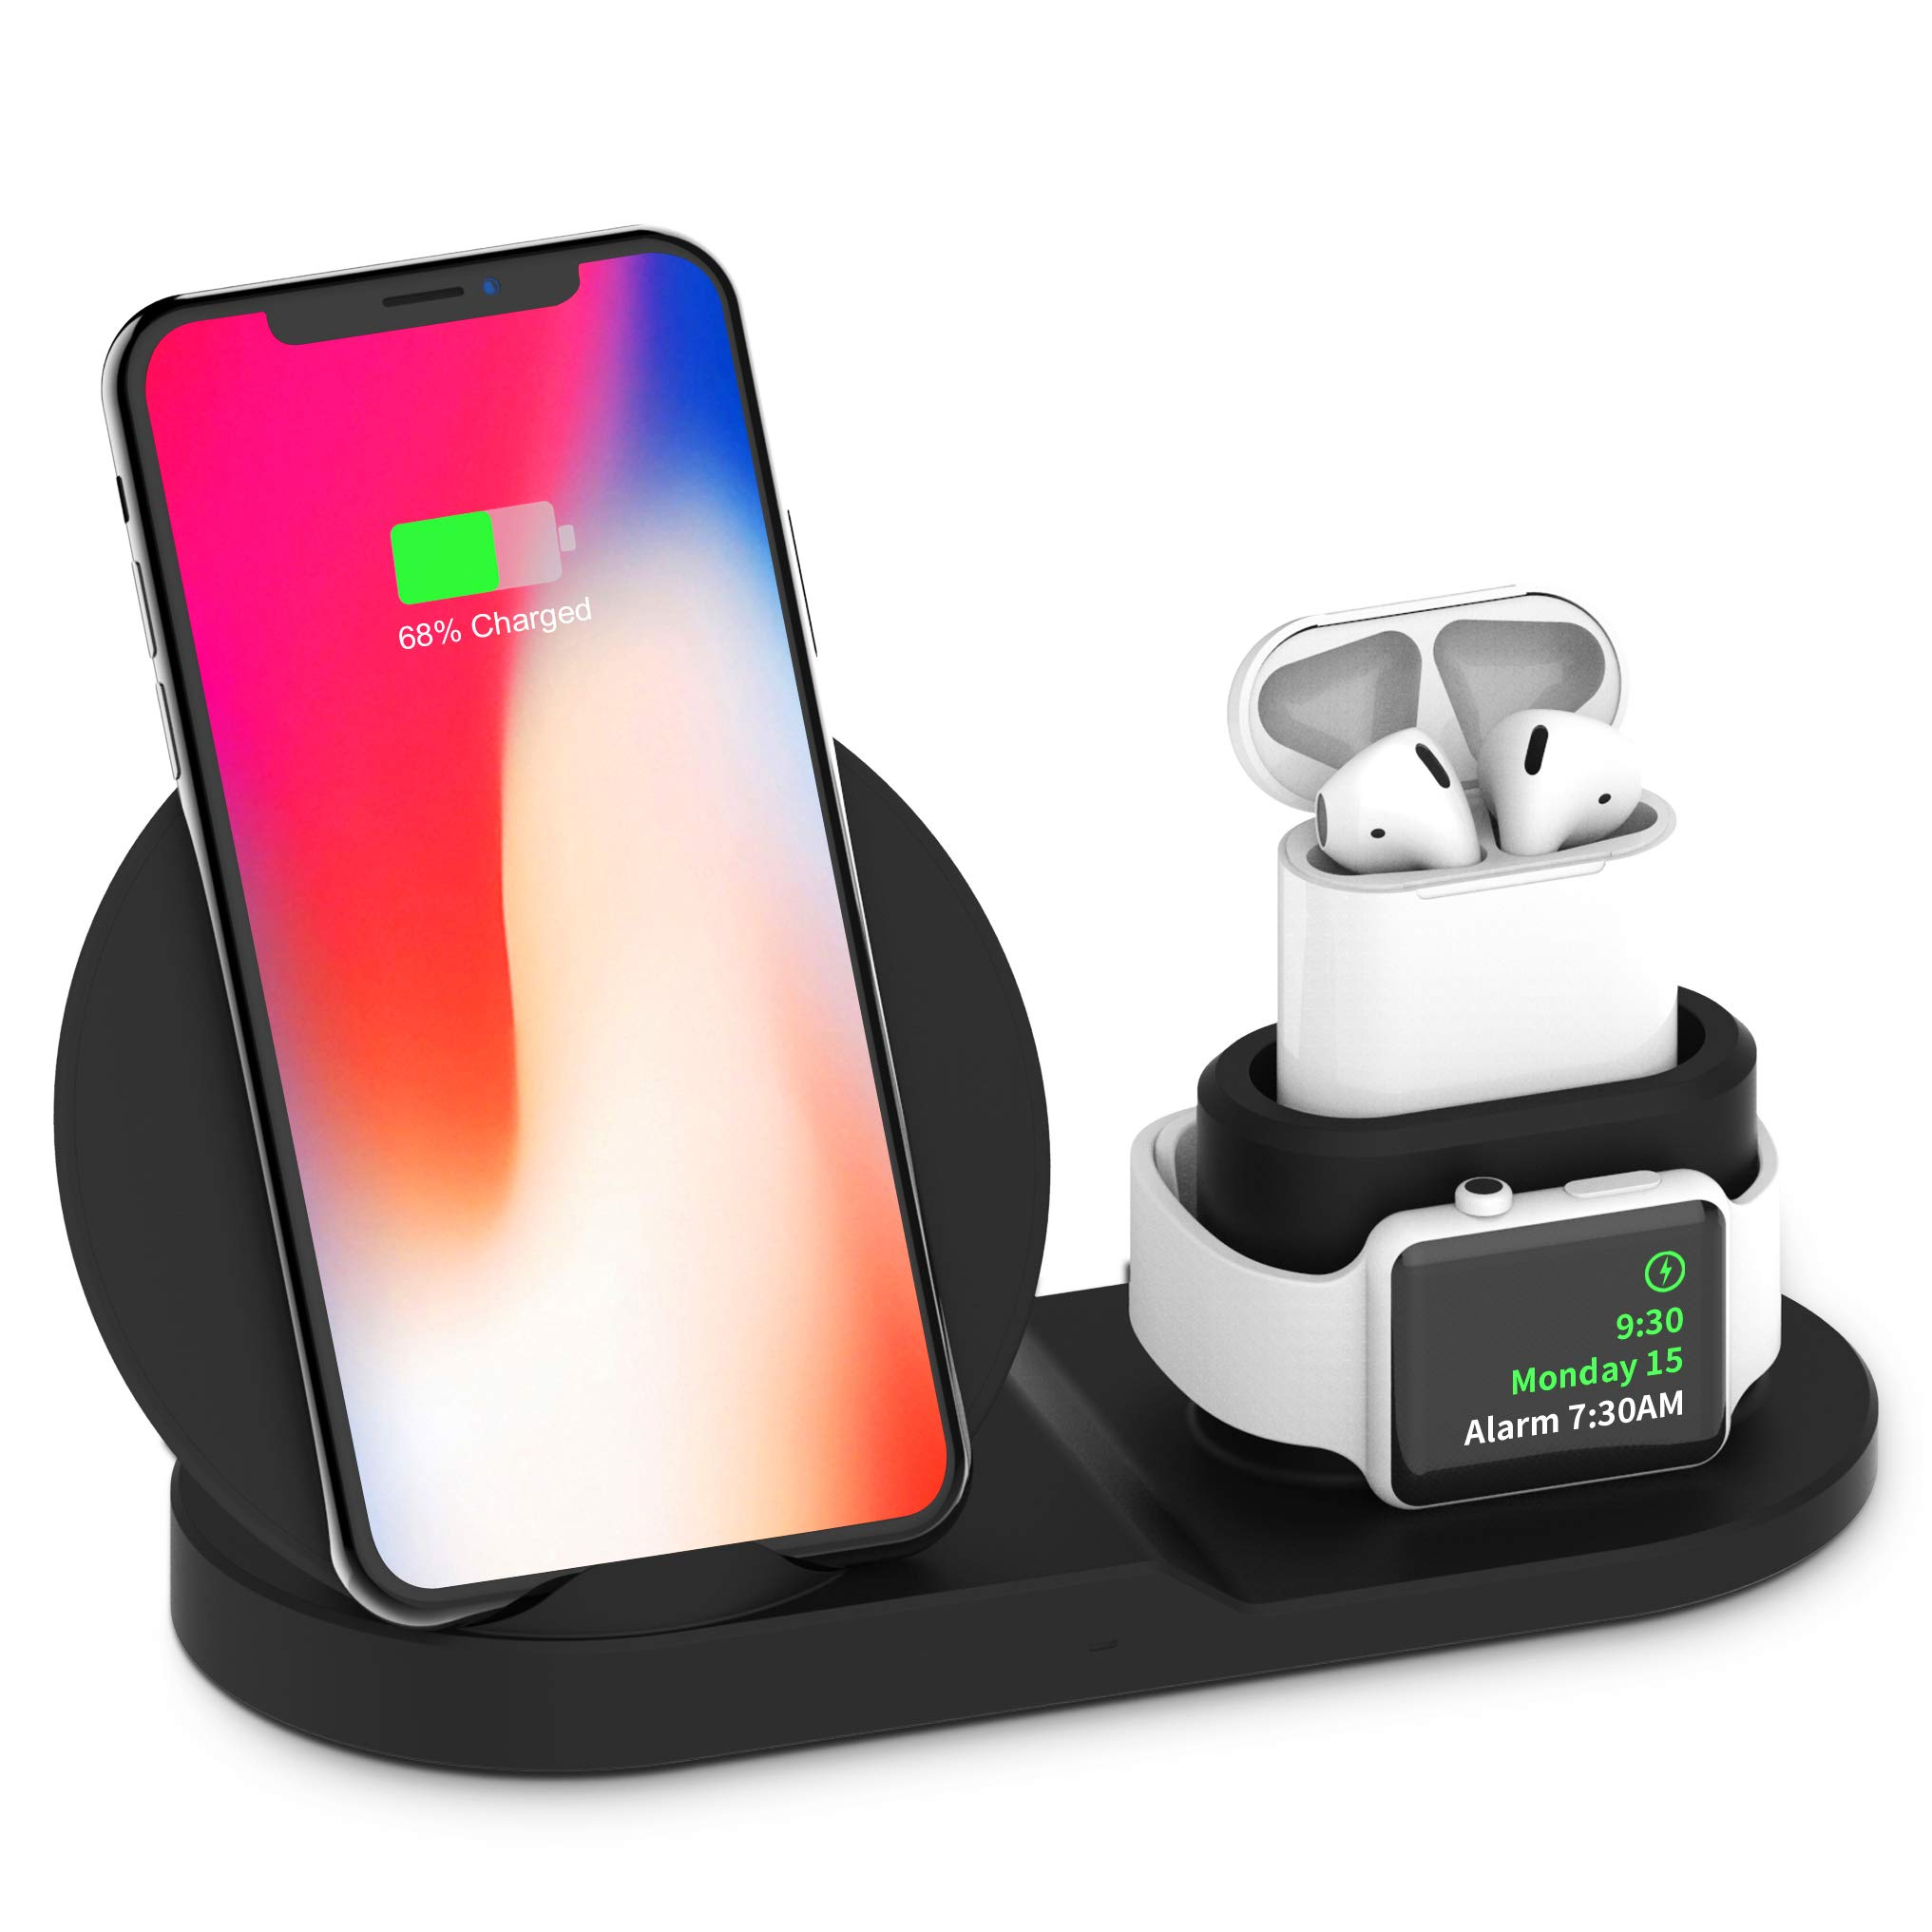 BESTBEING Wireless Charger, 3 in 1 Wireless Charging Dock for Apple Watch and Airpods, Charging Station for Multiple Devices, Qi Fast Wireless Charging Stand Compatible iPhone X/XS/XR/Xs Max/8/8 Plus by BESTBEING